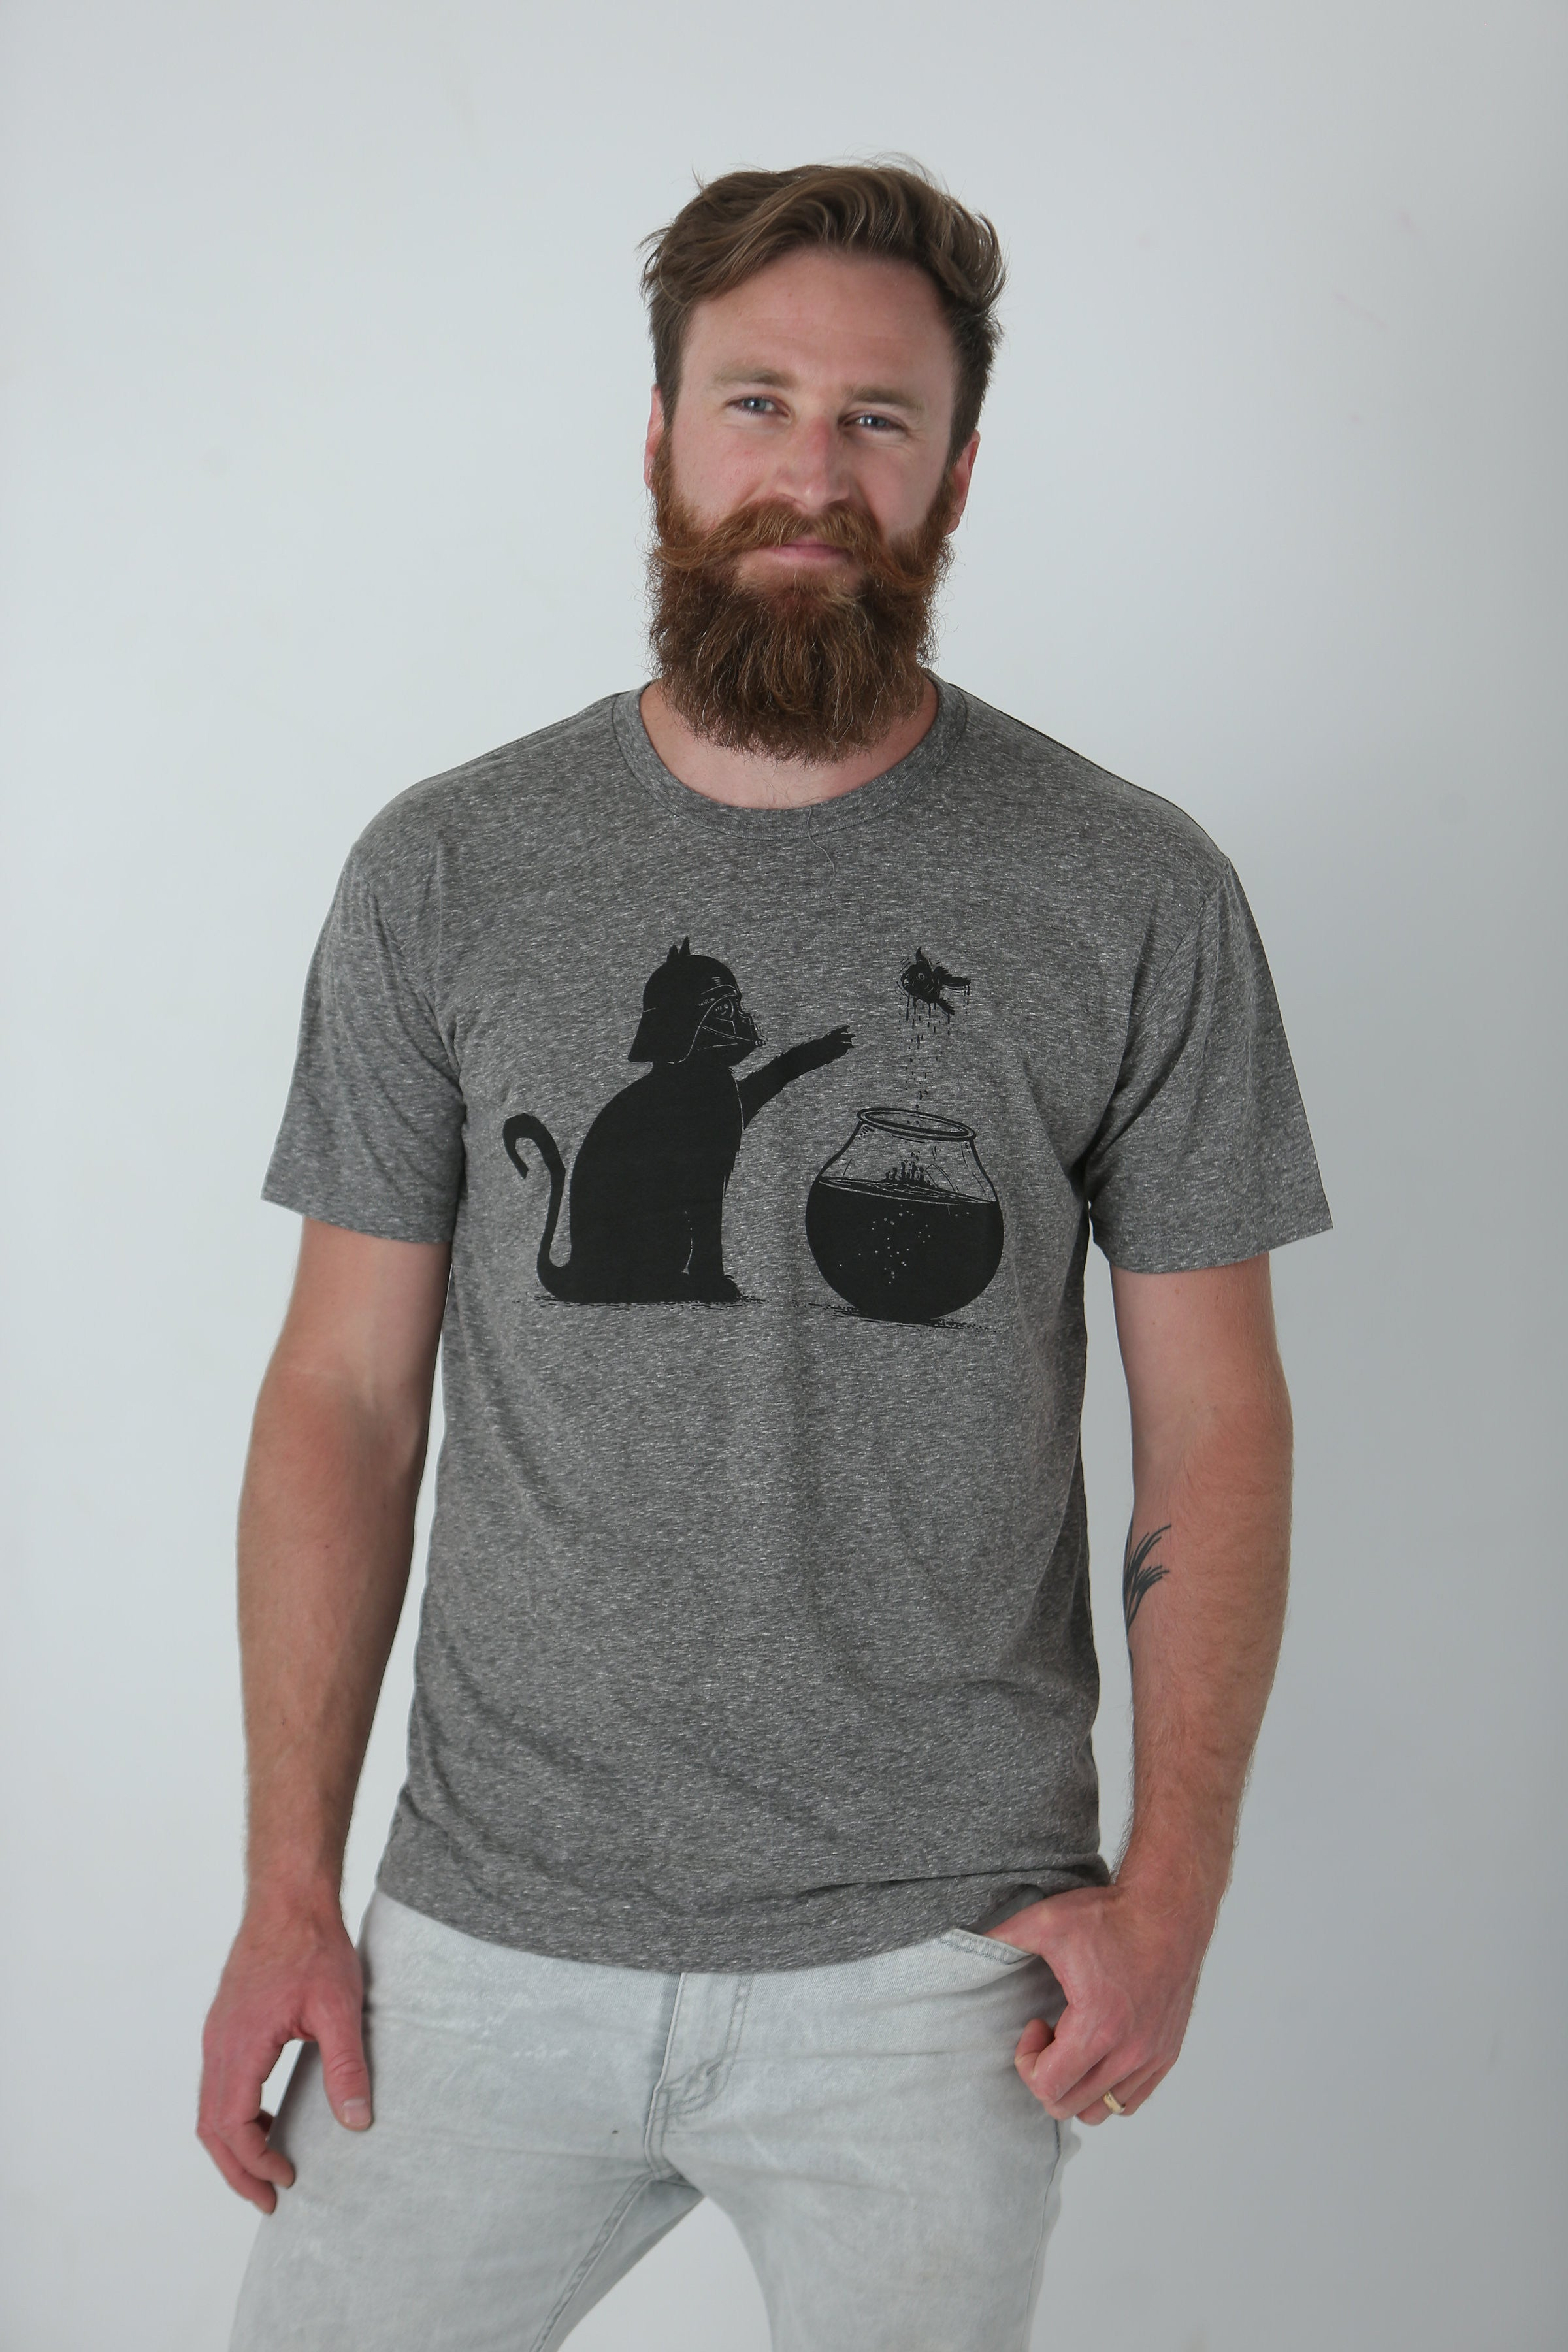 All Too Easy T-Shirt - Tractor Beam Apparel